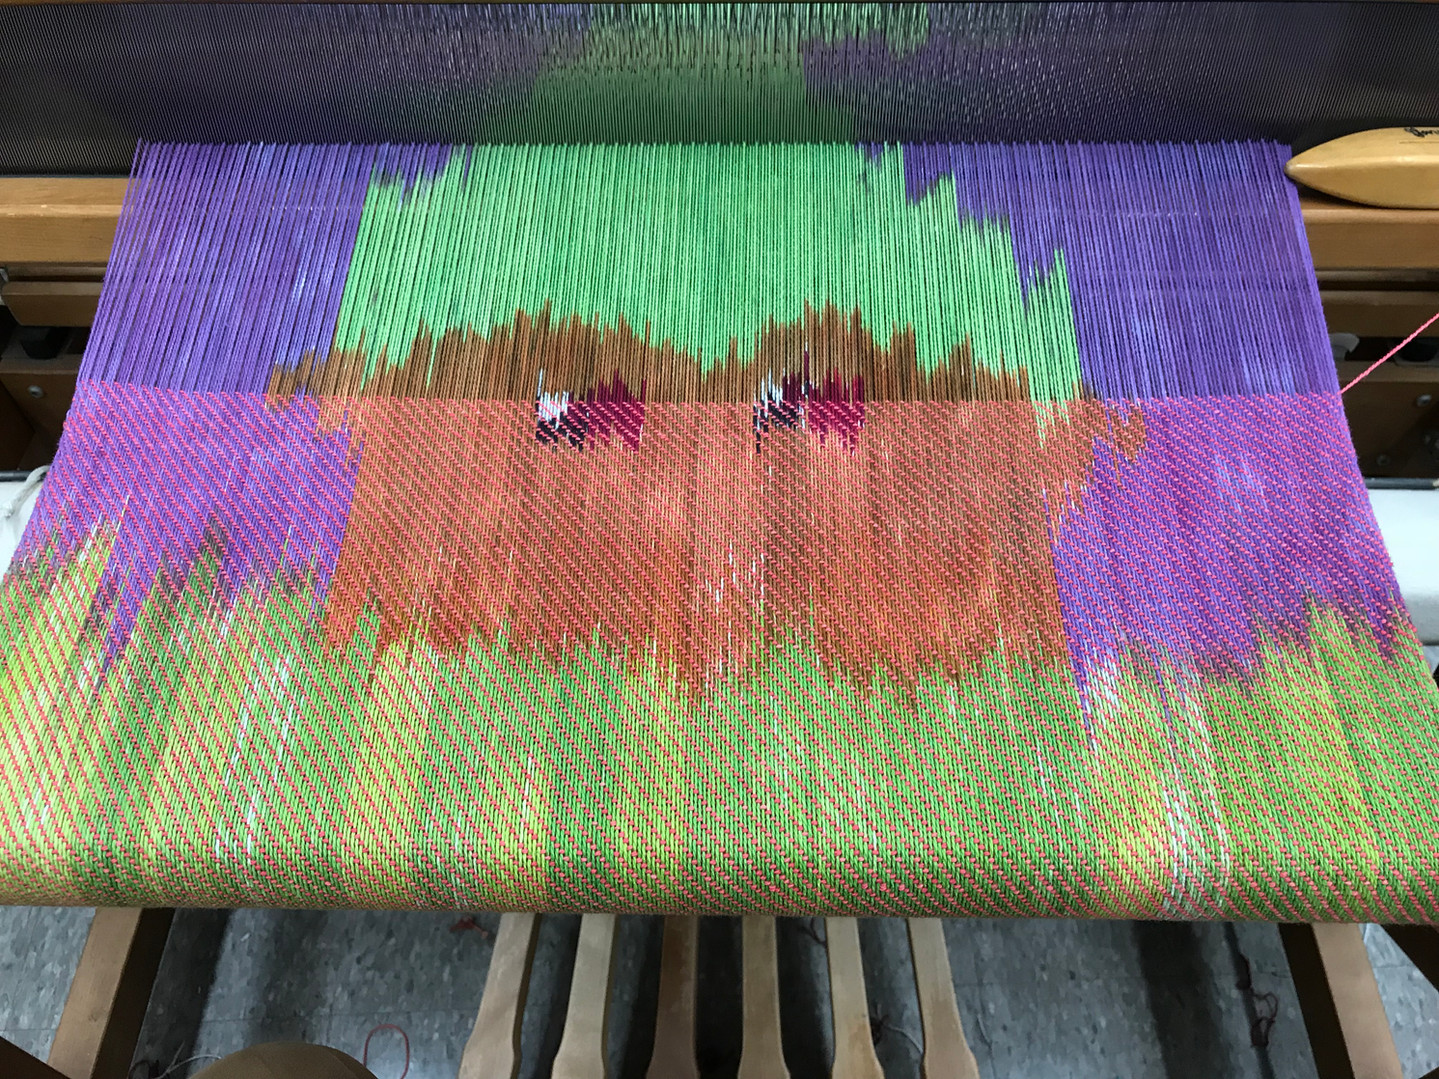 Ikat weaving